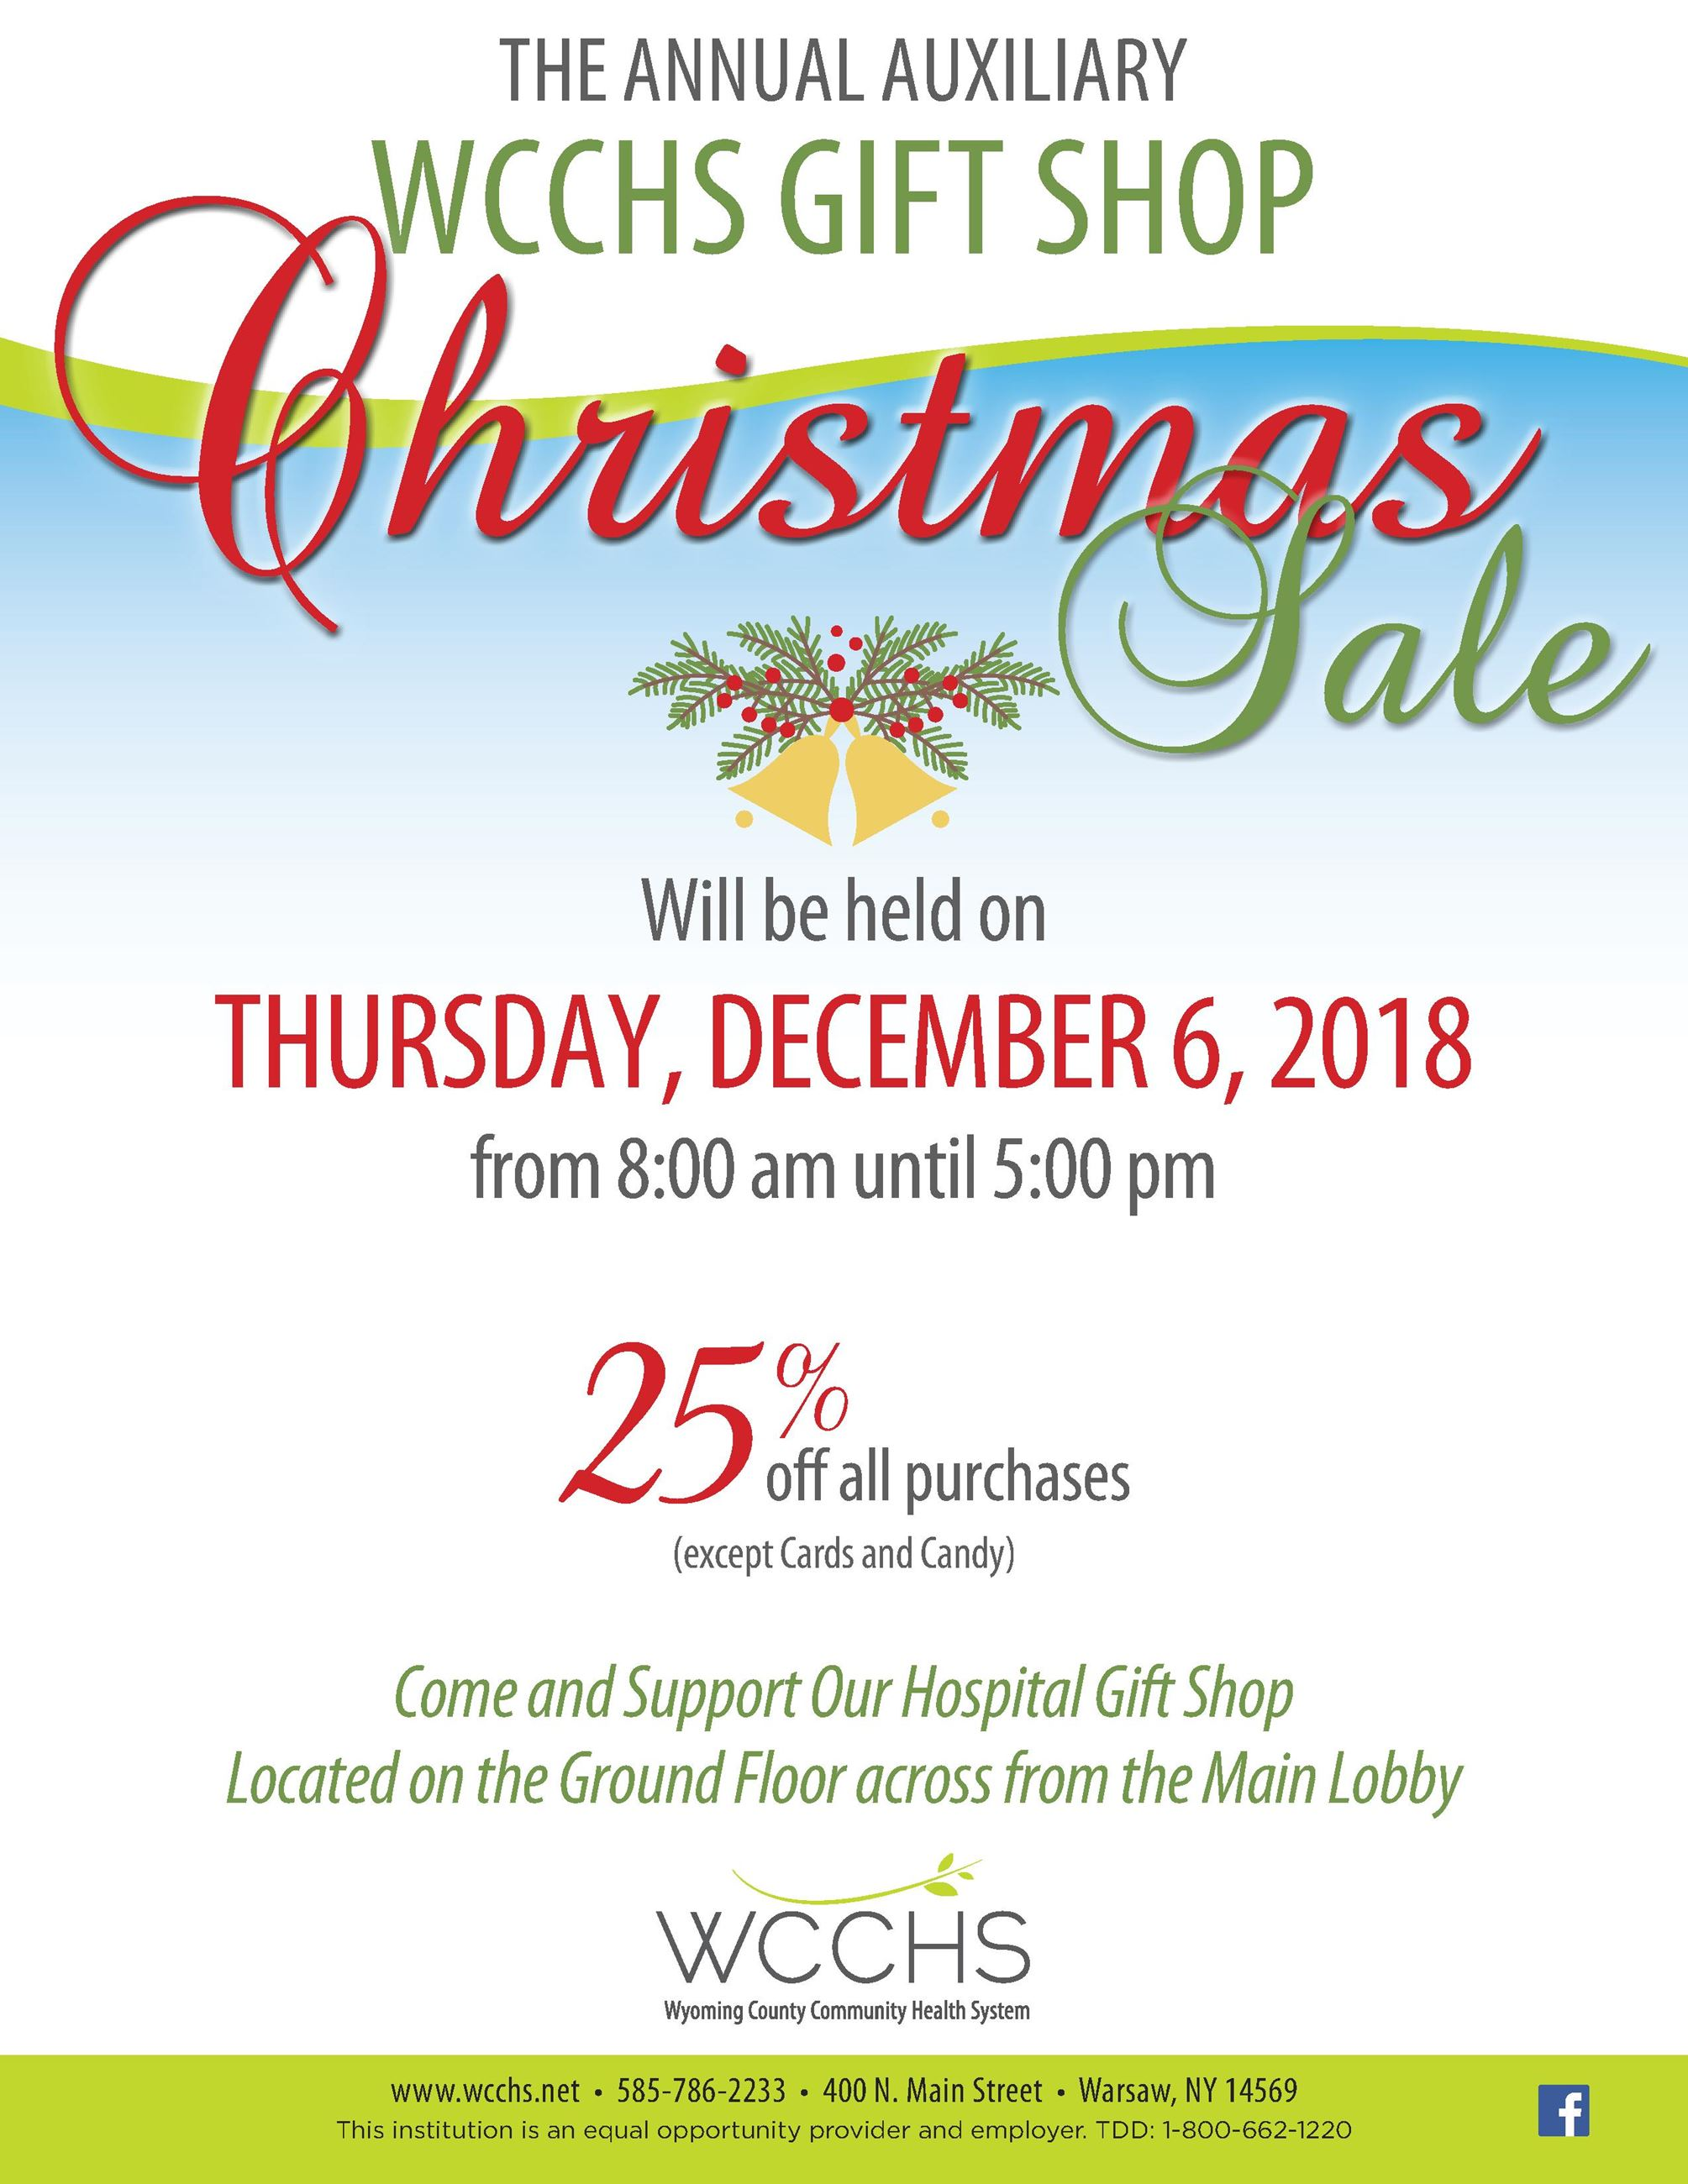 WCCH0630_Holiday Gift Shop Sale flyer_8.5x11